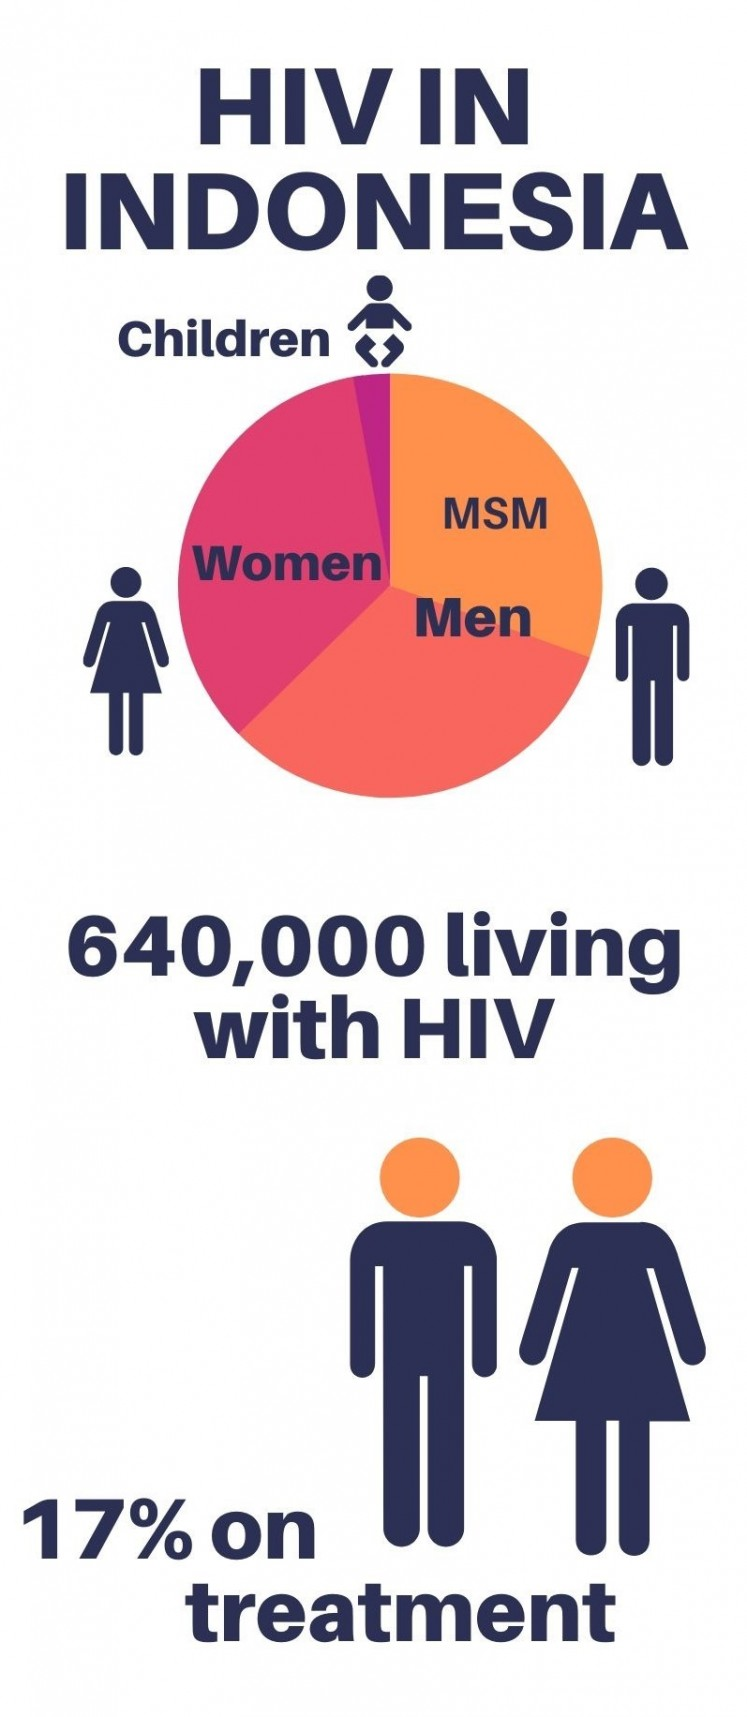 Infographic of people living with HIV in Indonesia.